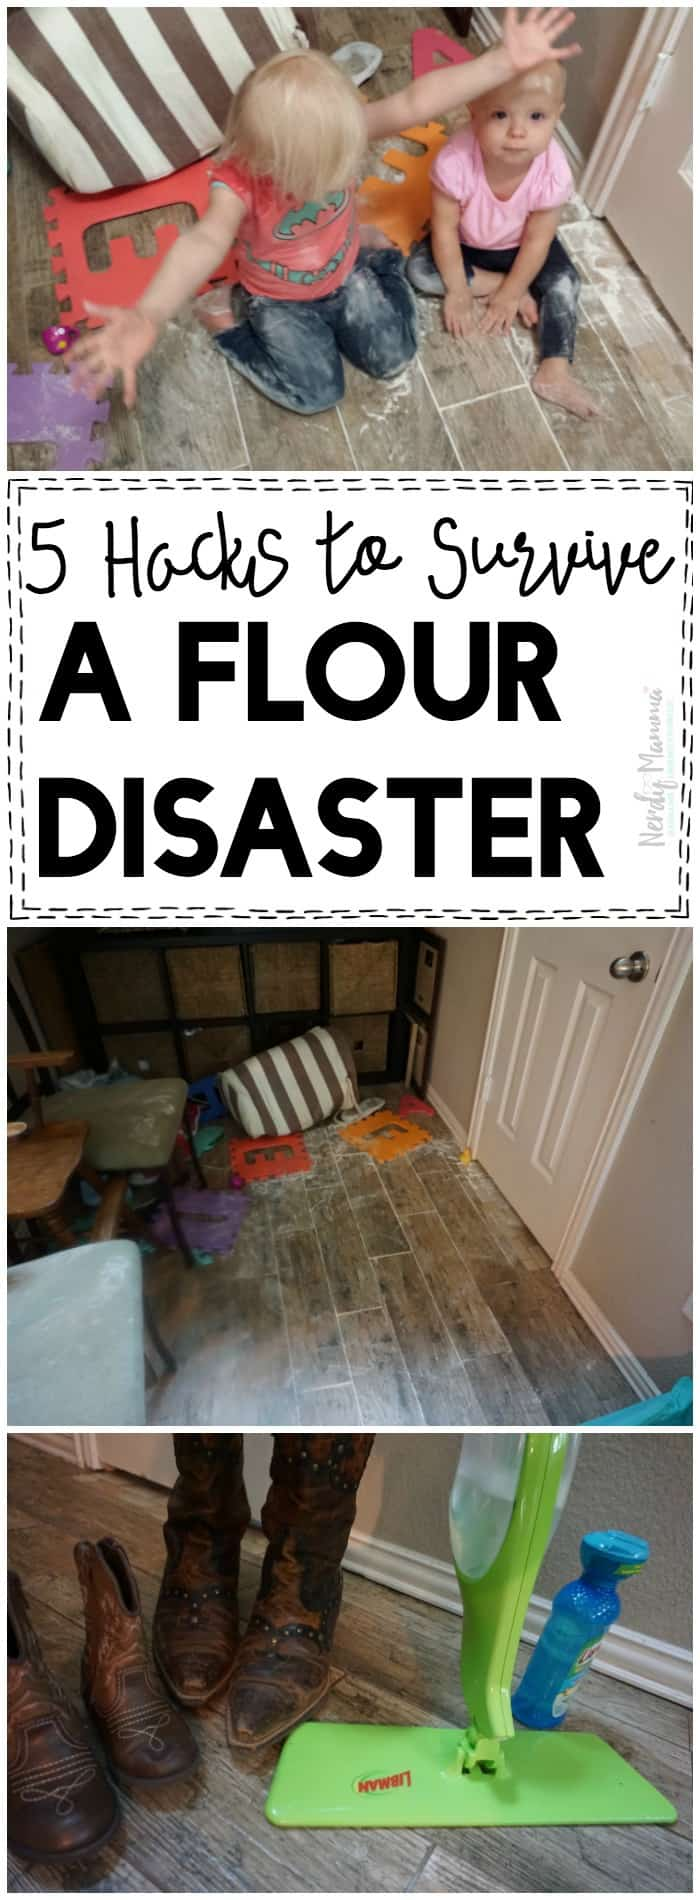 OMG I needed this when my kids made HUGE flour disasters!